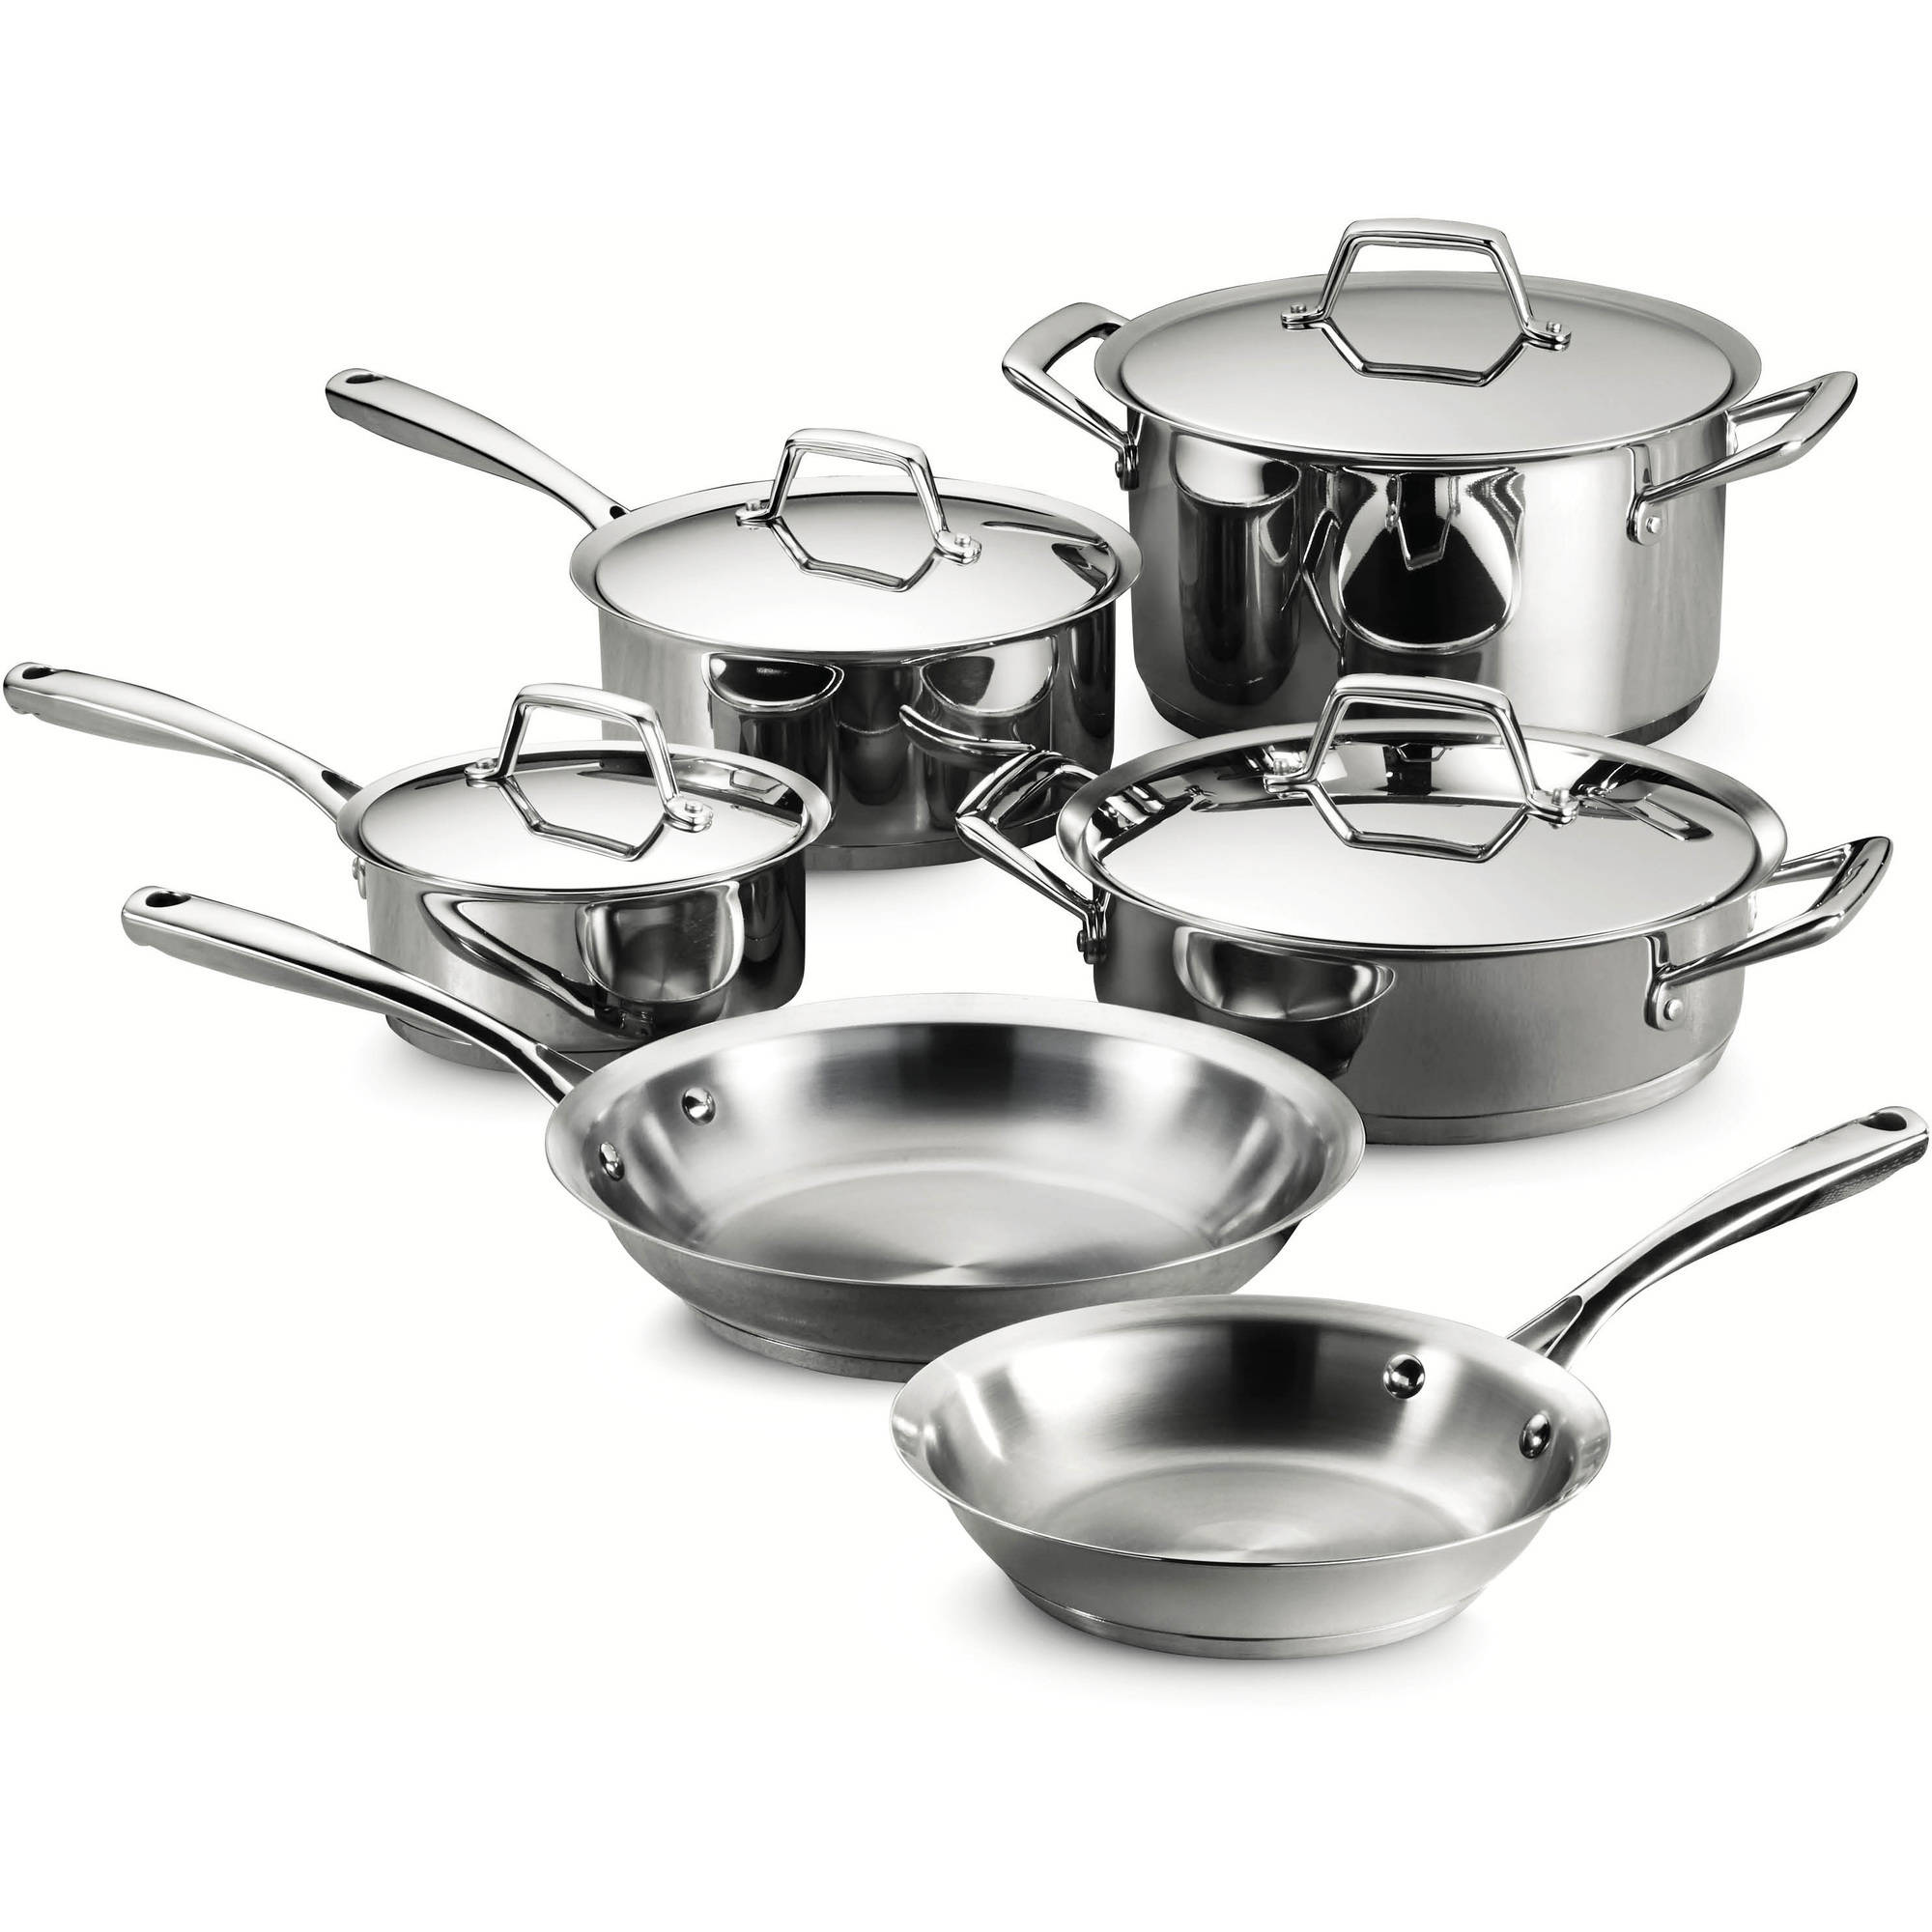 Tramontina Gourmet Prima 10-Piece Stainless Steel Cookware Set